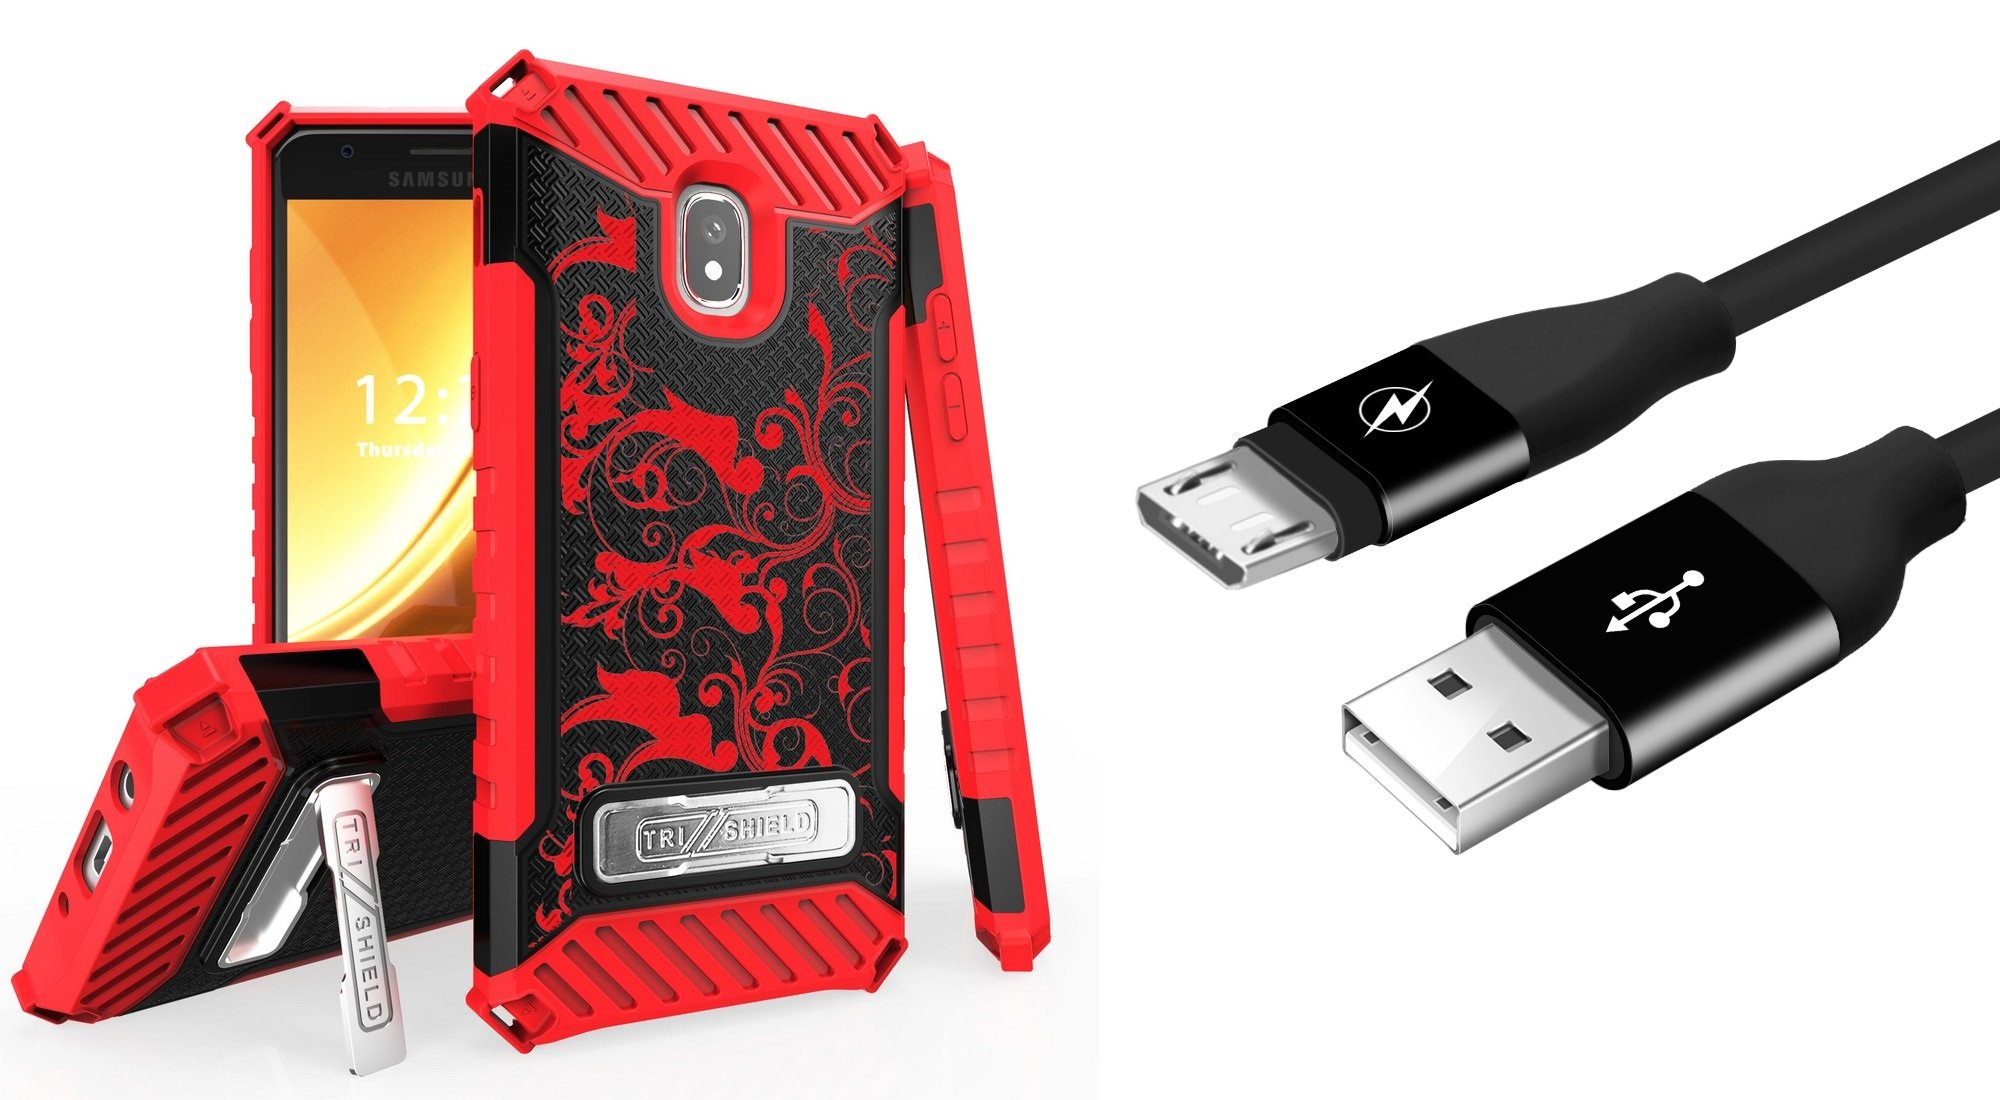 Military Grade [MIL-STD 810G-516.6] Kickstand Card Slot Case (Red Vines) with Durable 5000+ Bend Lifespan Micro USB Cable (3 feet) and Atom Cloth for Samsung Galaxy Express Prime 3 (J337A) AT&T